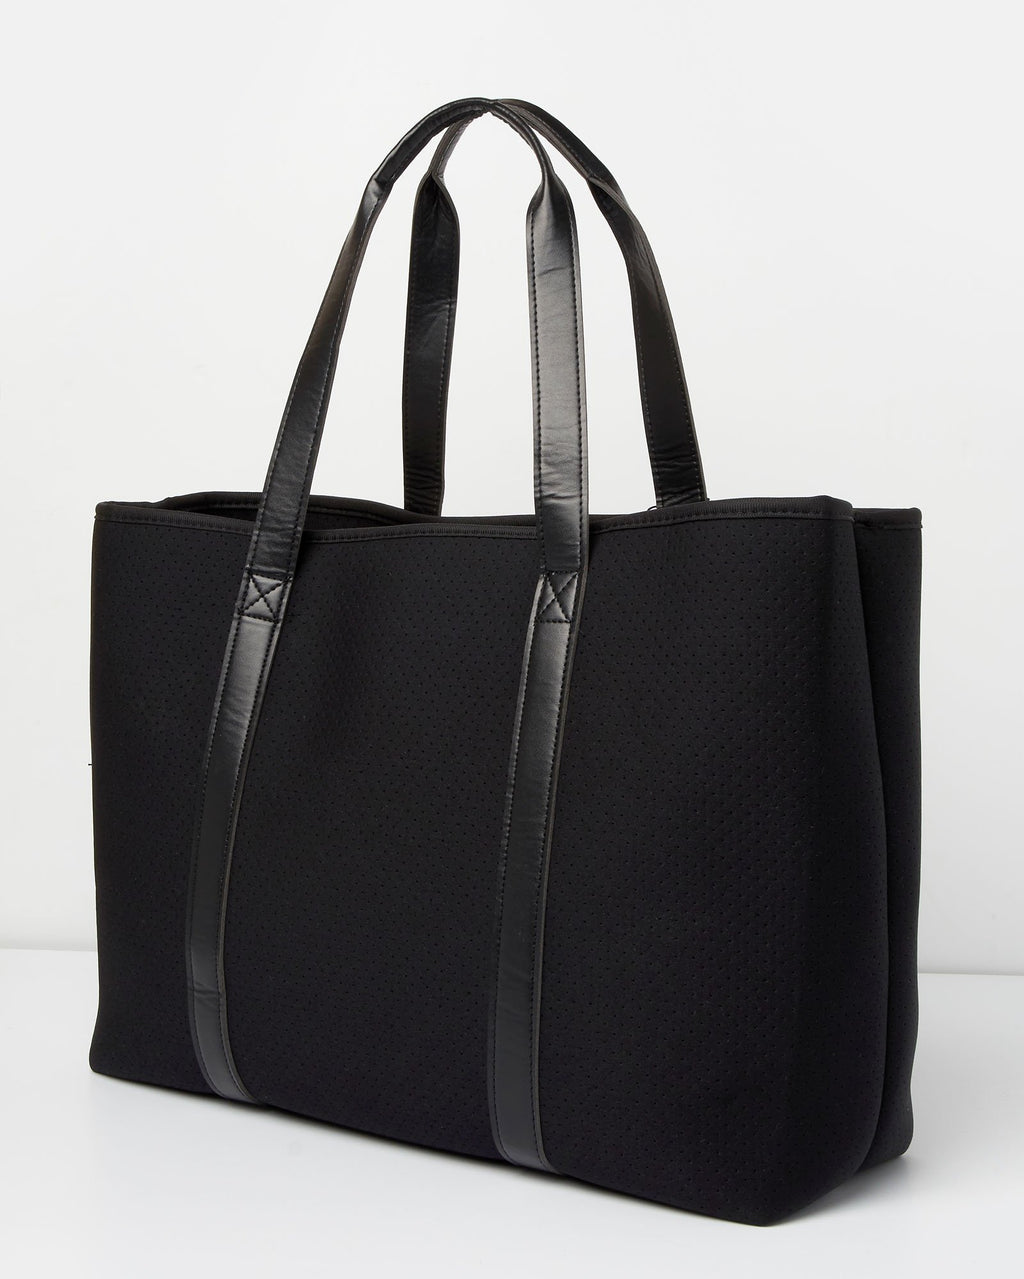 Miz Casa & Co Tabitha Neoprene Tote Bag Black-Miz Casa & Co-Nomads Cove